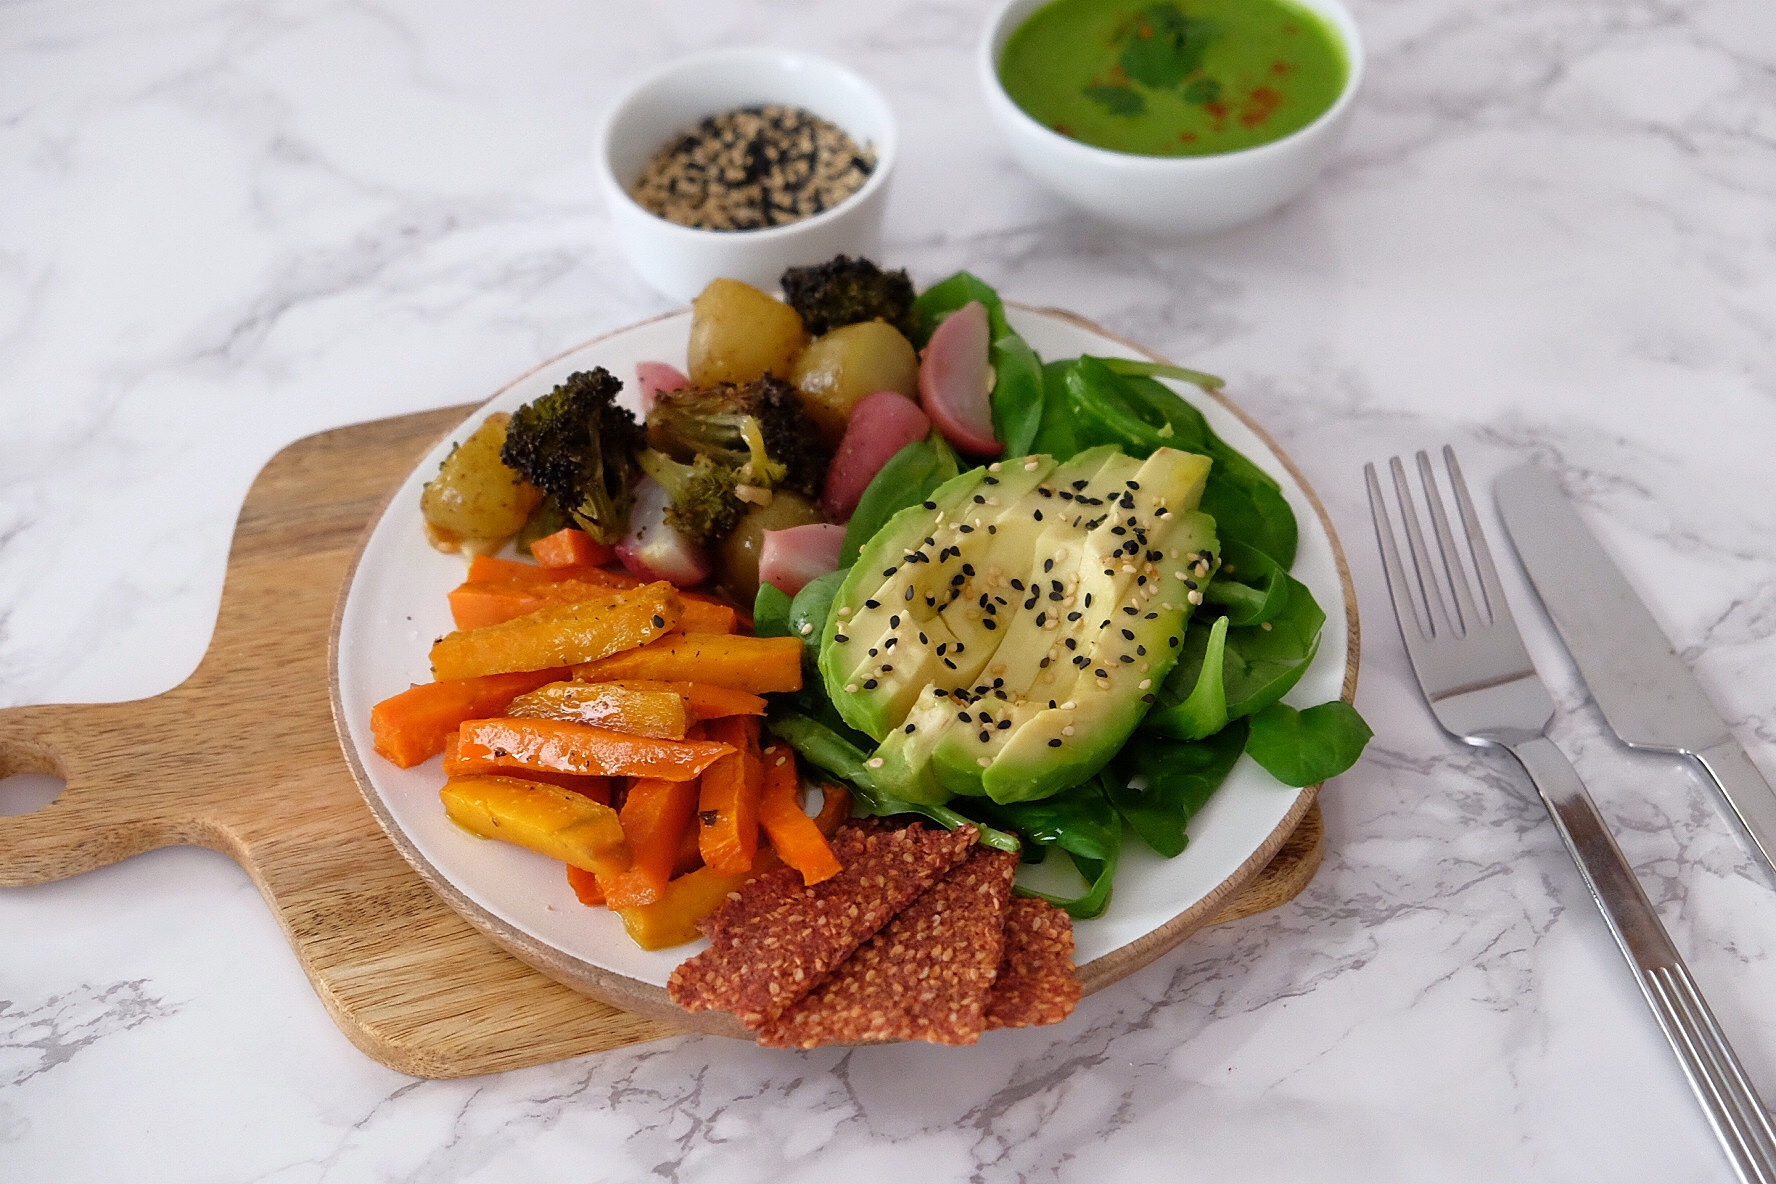 Roasted vegetable salad with green tahini sauce